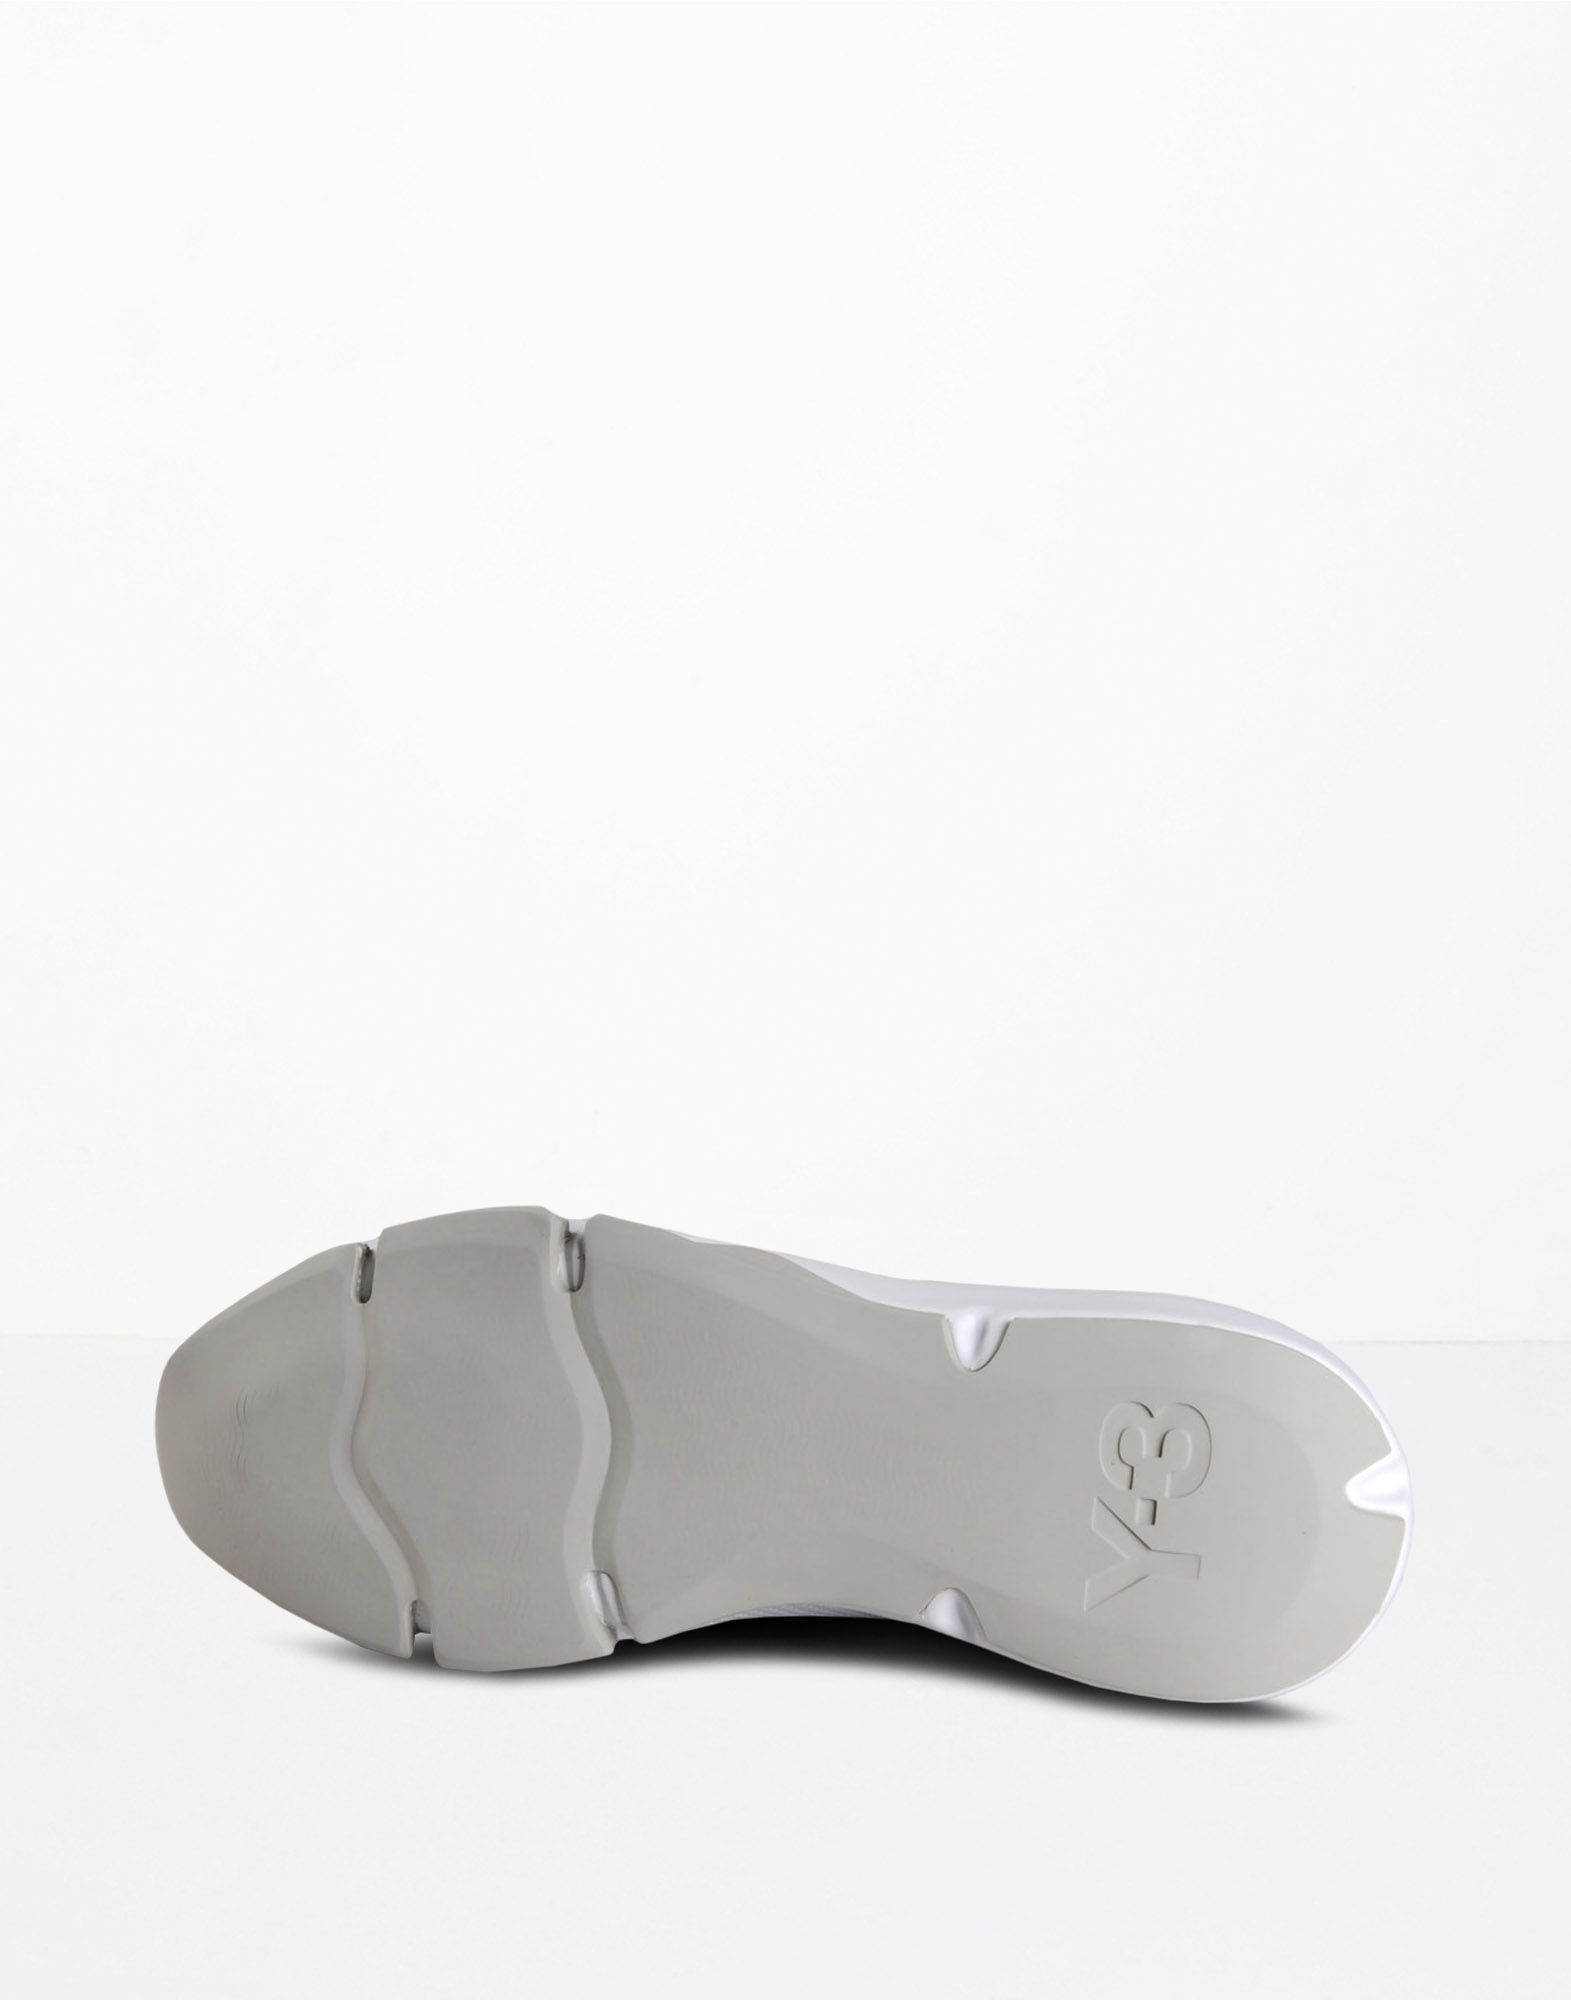 0a23c2a06a02a Y-3 Y-3 FUTURE LOW Sneakers Man e